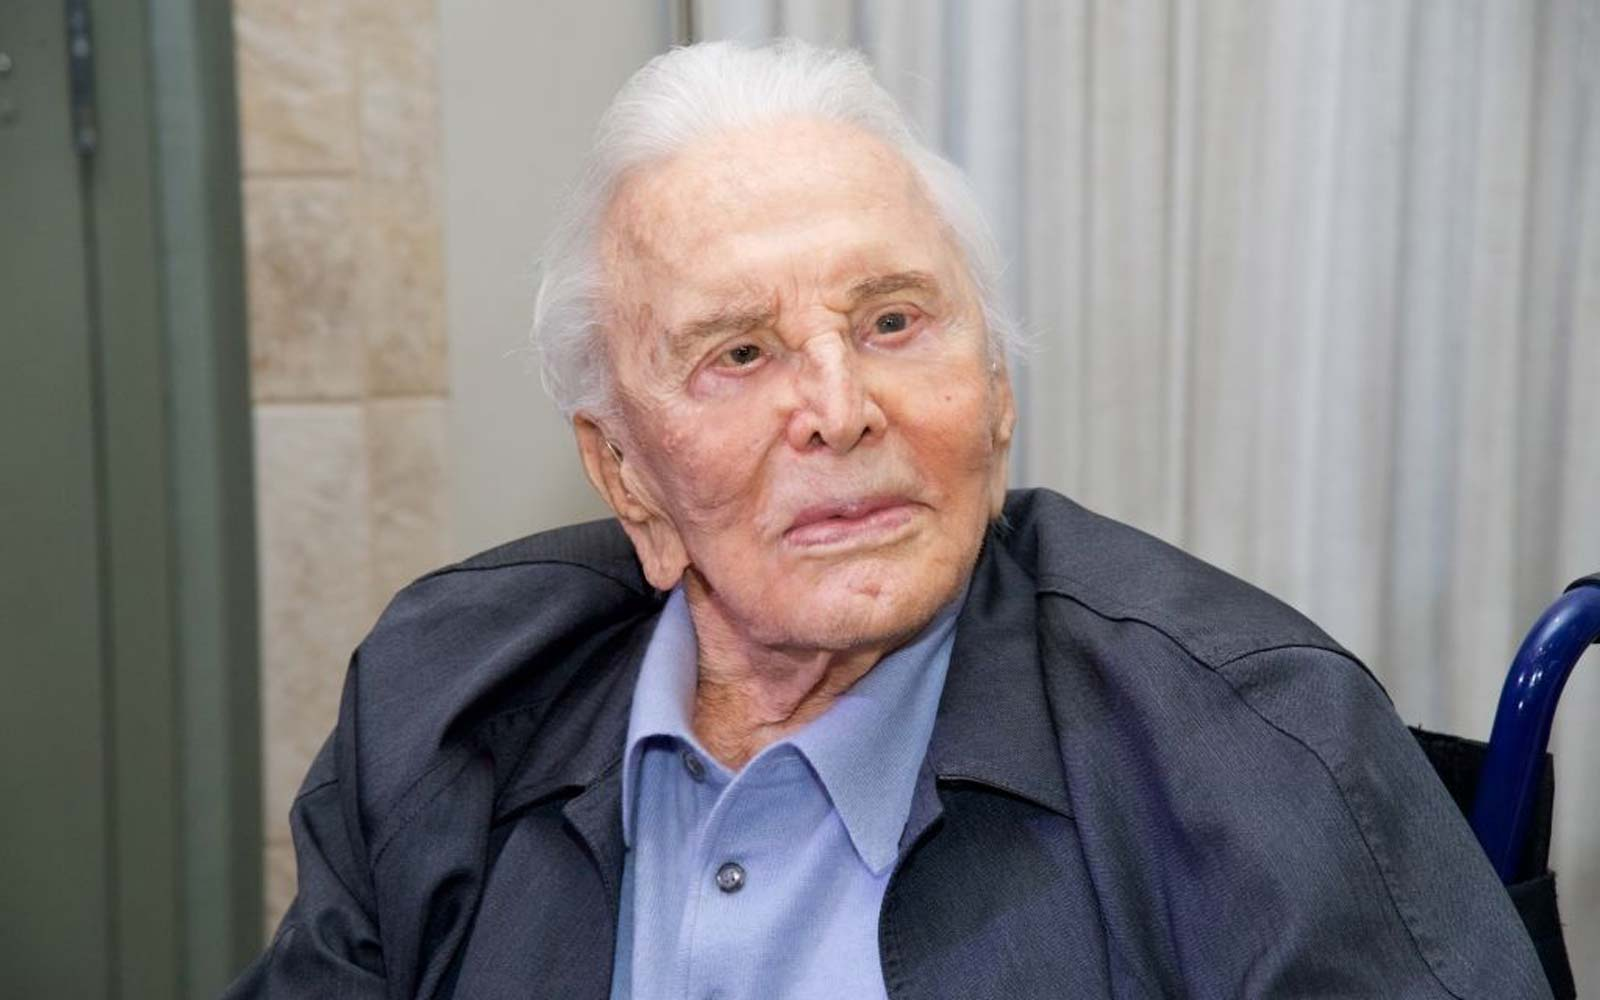 Kirk Douglas Still Enjoys Backyard Camping at the Age of 102: He Is 'Such an Inspiration'